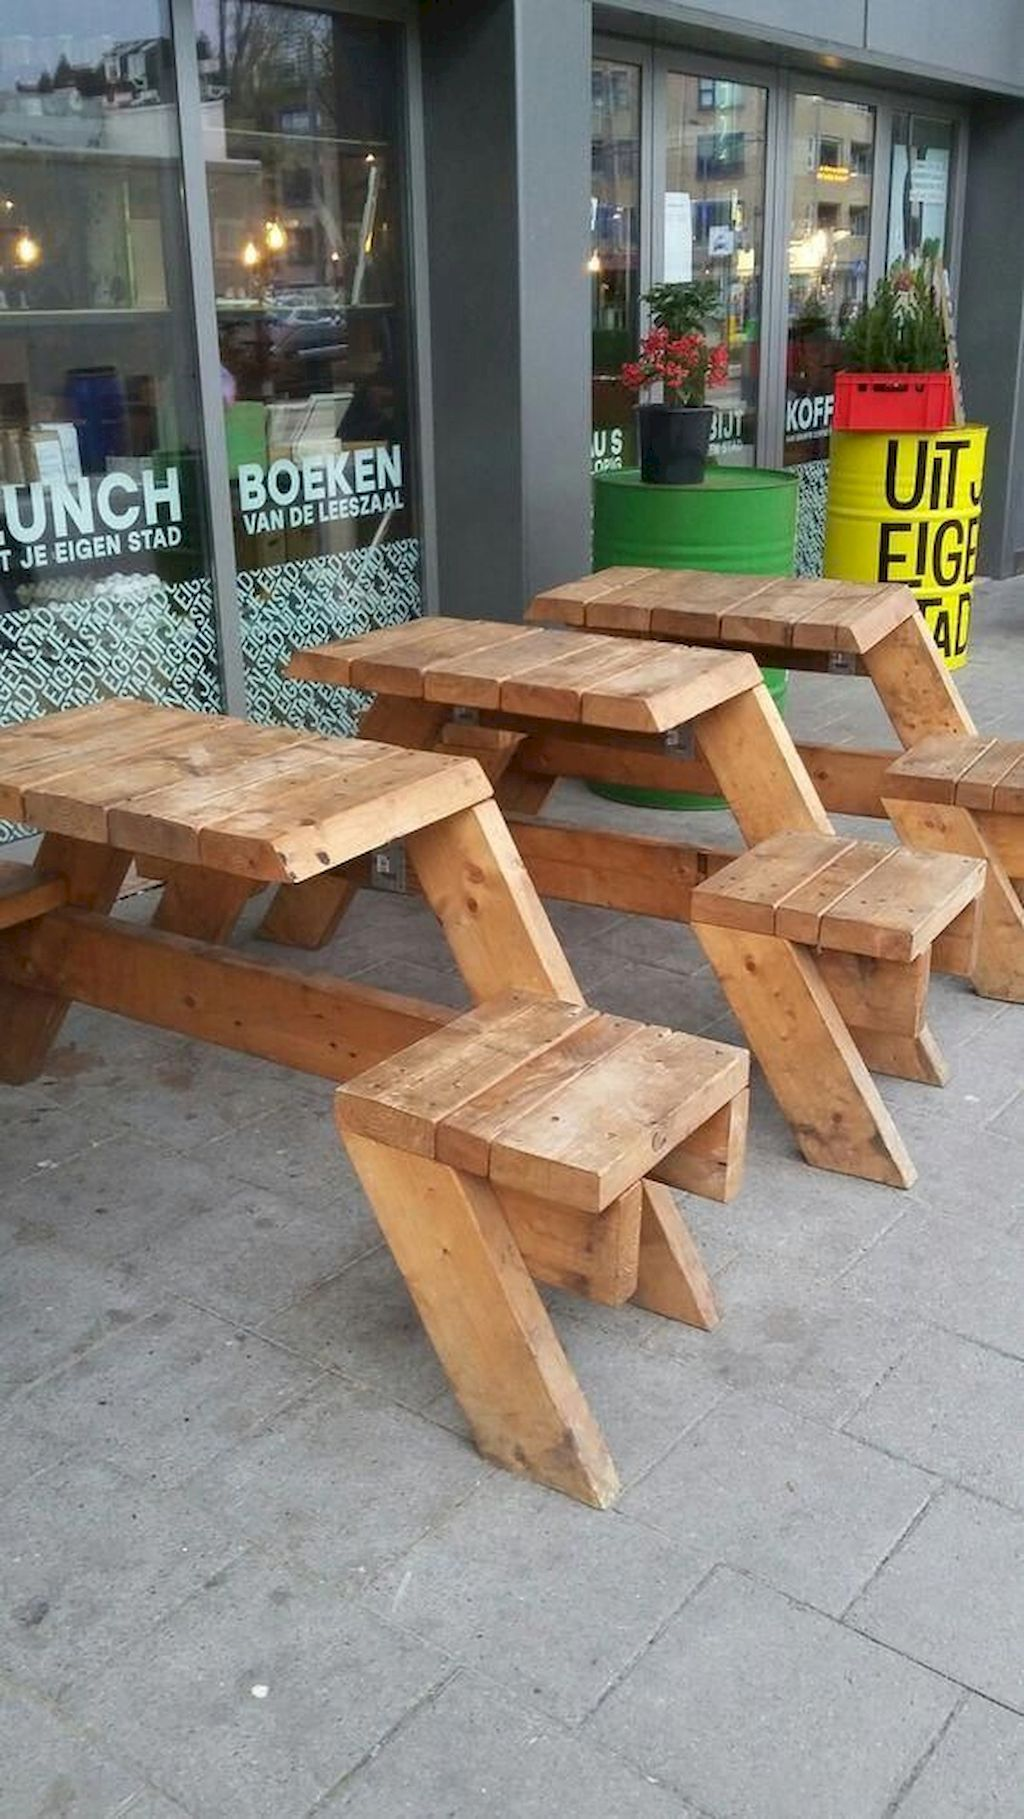 50 Diy Projects With Wood Pallets Elonahome Com Woodworking Projects That Sell Wood Projects Wood Projects For Beginners